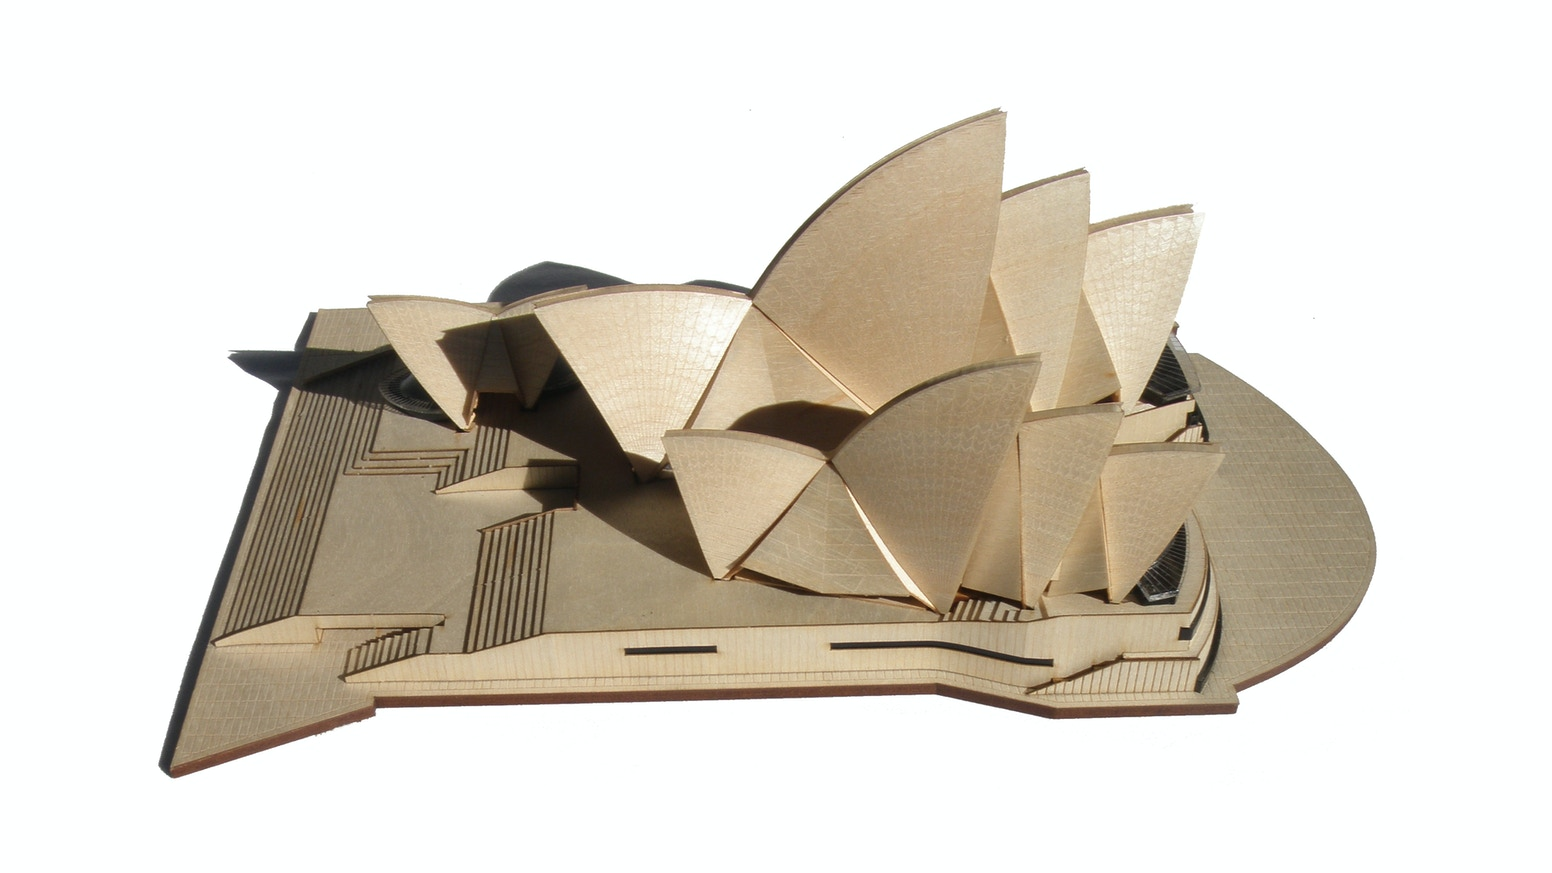 A beautifully crafted timber model kit of the Sydney Opera House. Build your own iconic architectural masterpiece.